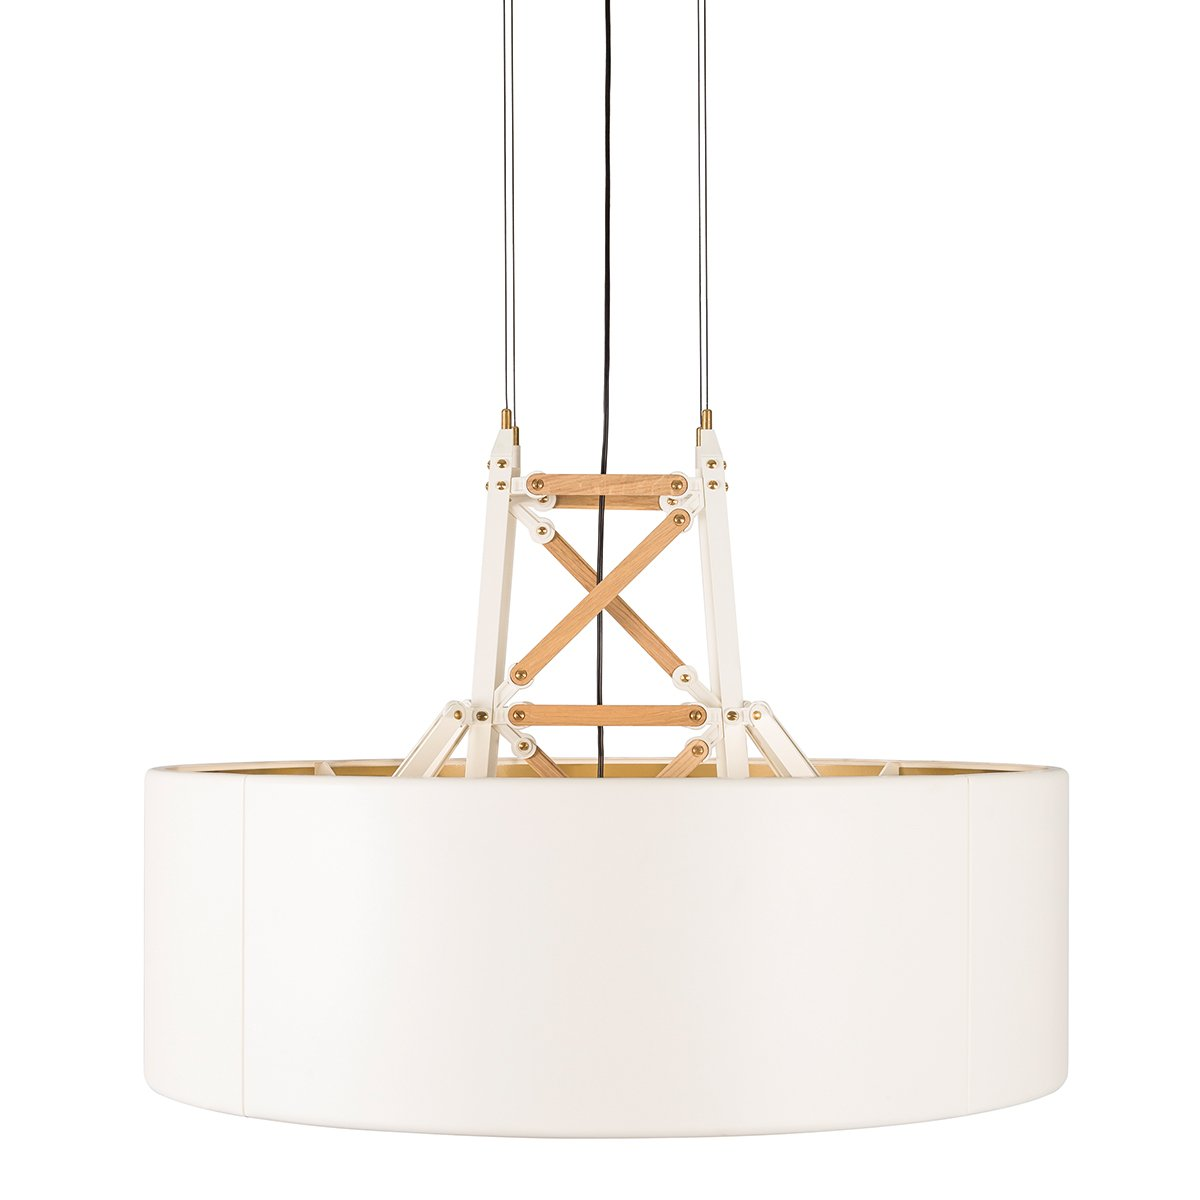 Moooi Construction Hanglamp - Wit/Hout - Large